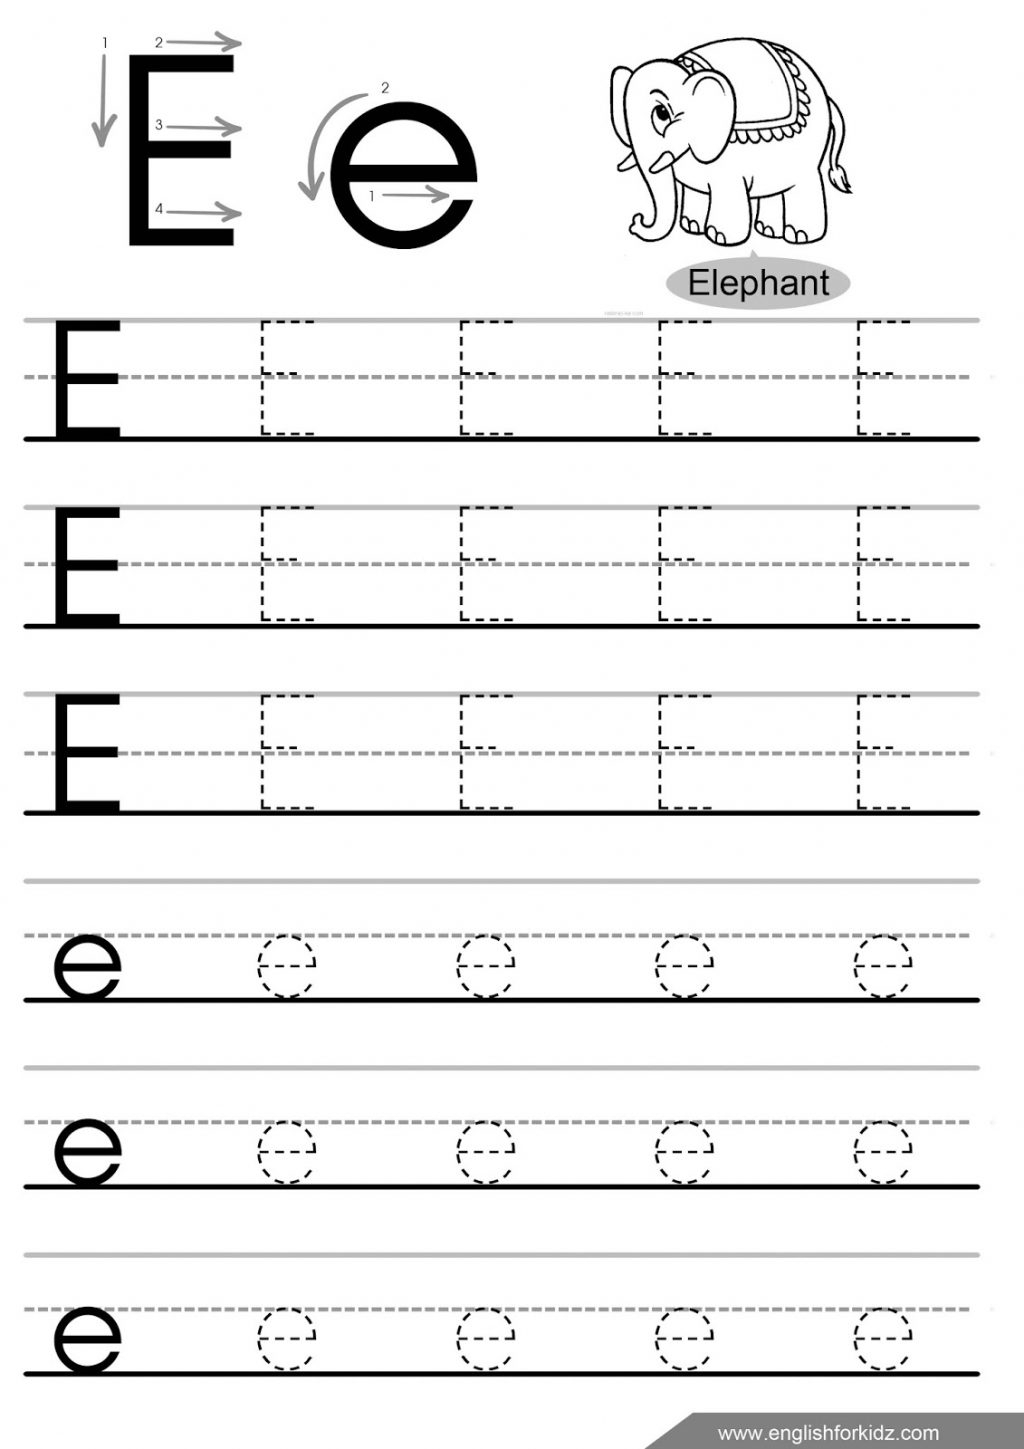 32 Fun Letter E Worksheets | Kittybabylove pertaining to Letter E Worksheets Pdf